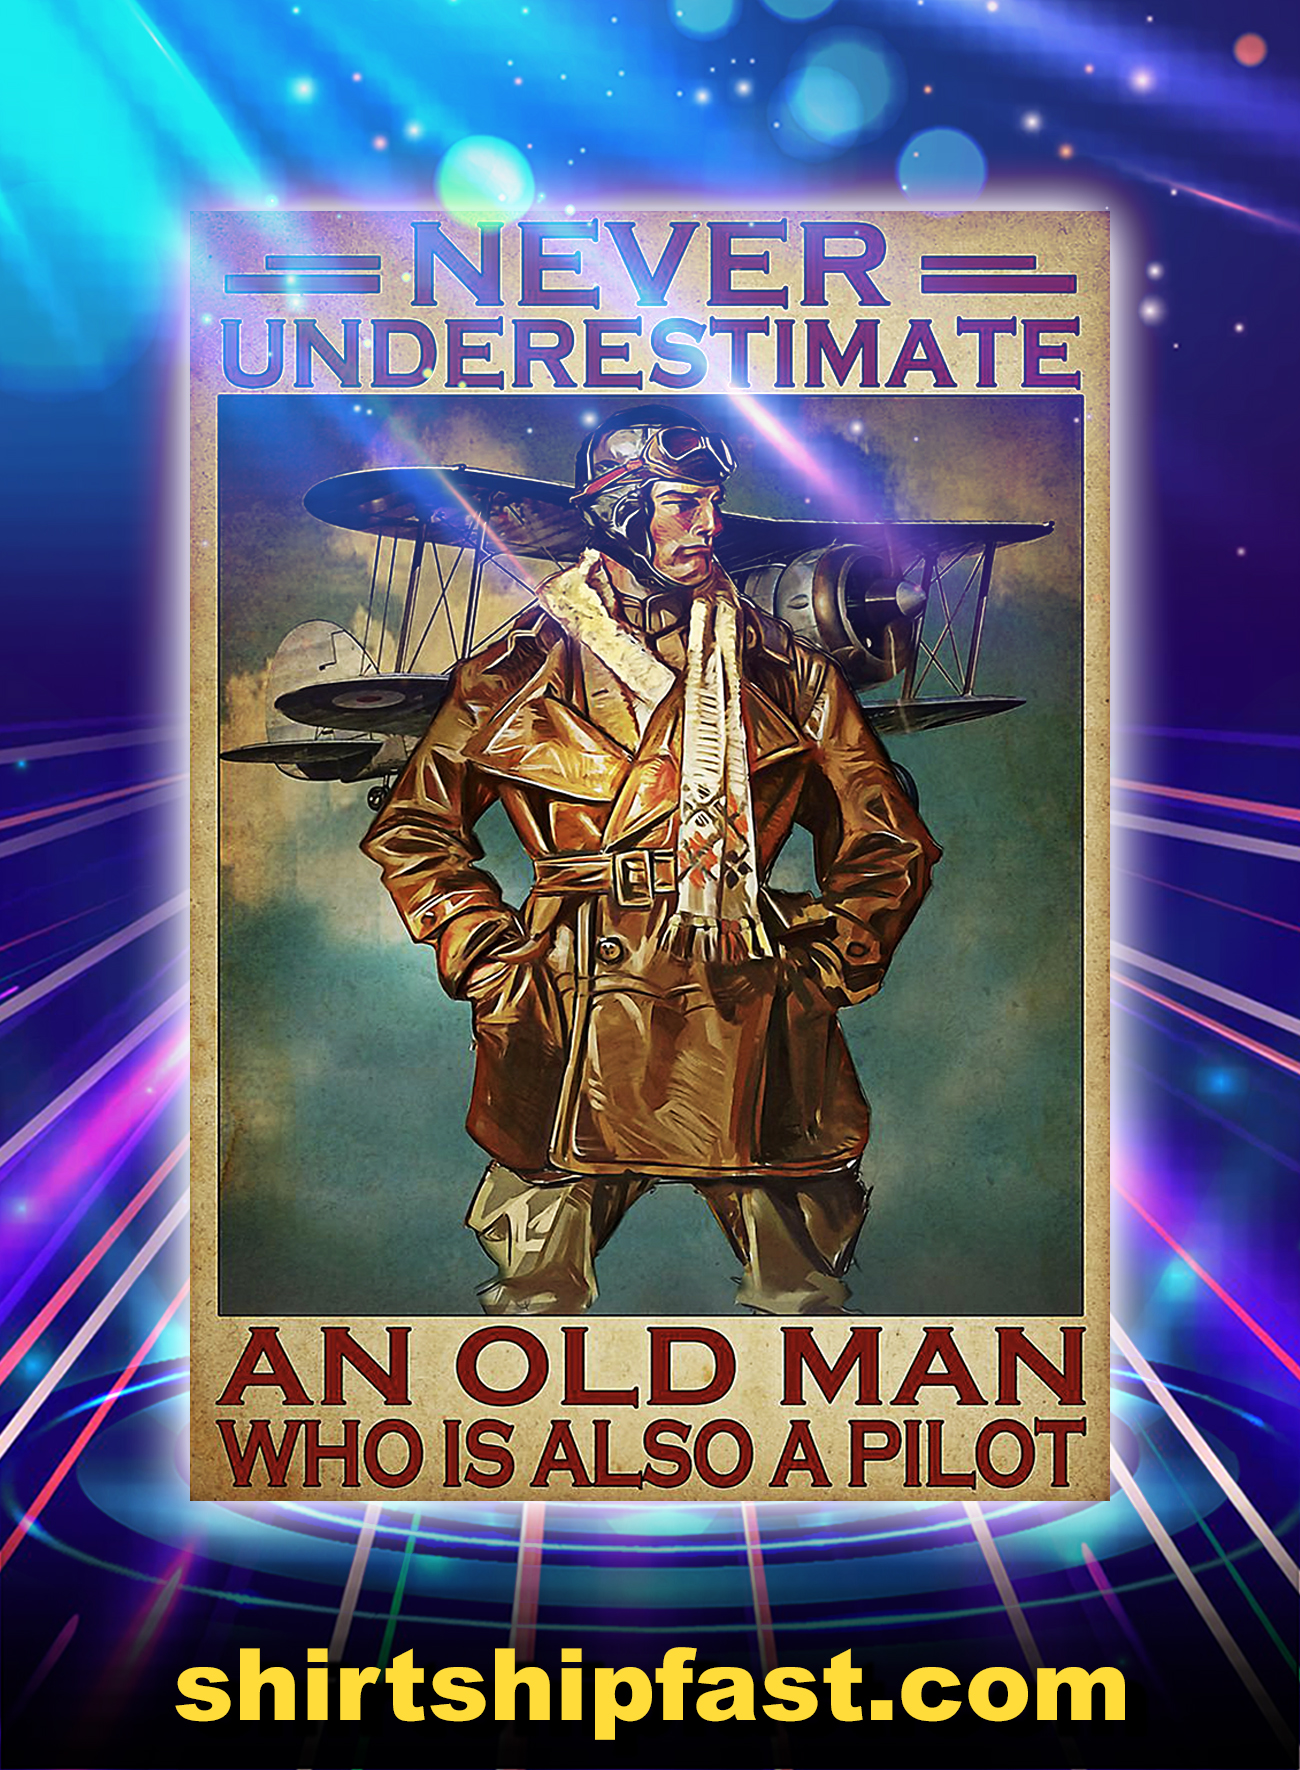 Never underestimate an old man who is also a pilot poster - A4